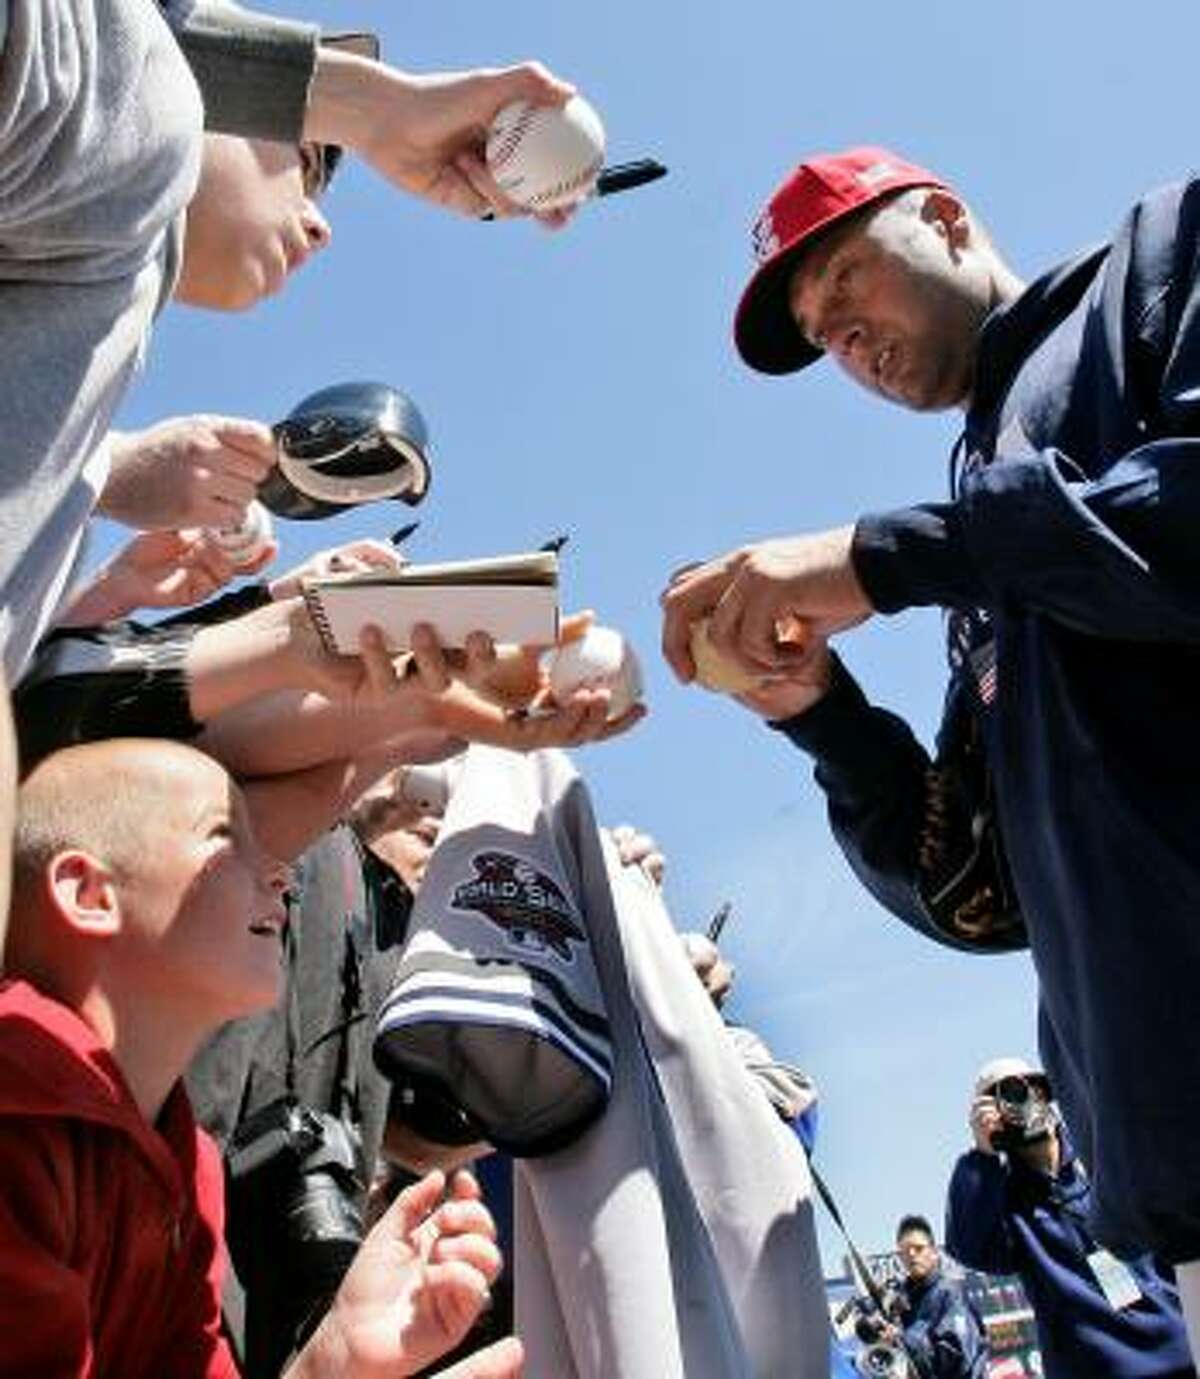 U.S. shortstop Derek Jeter, right, signs autographs before a spring baseball game against his club team, the New York Yankees.